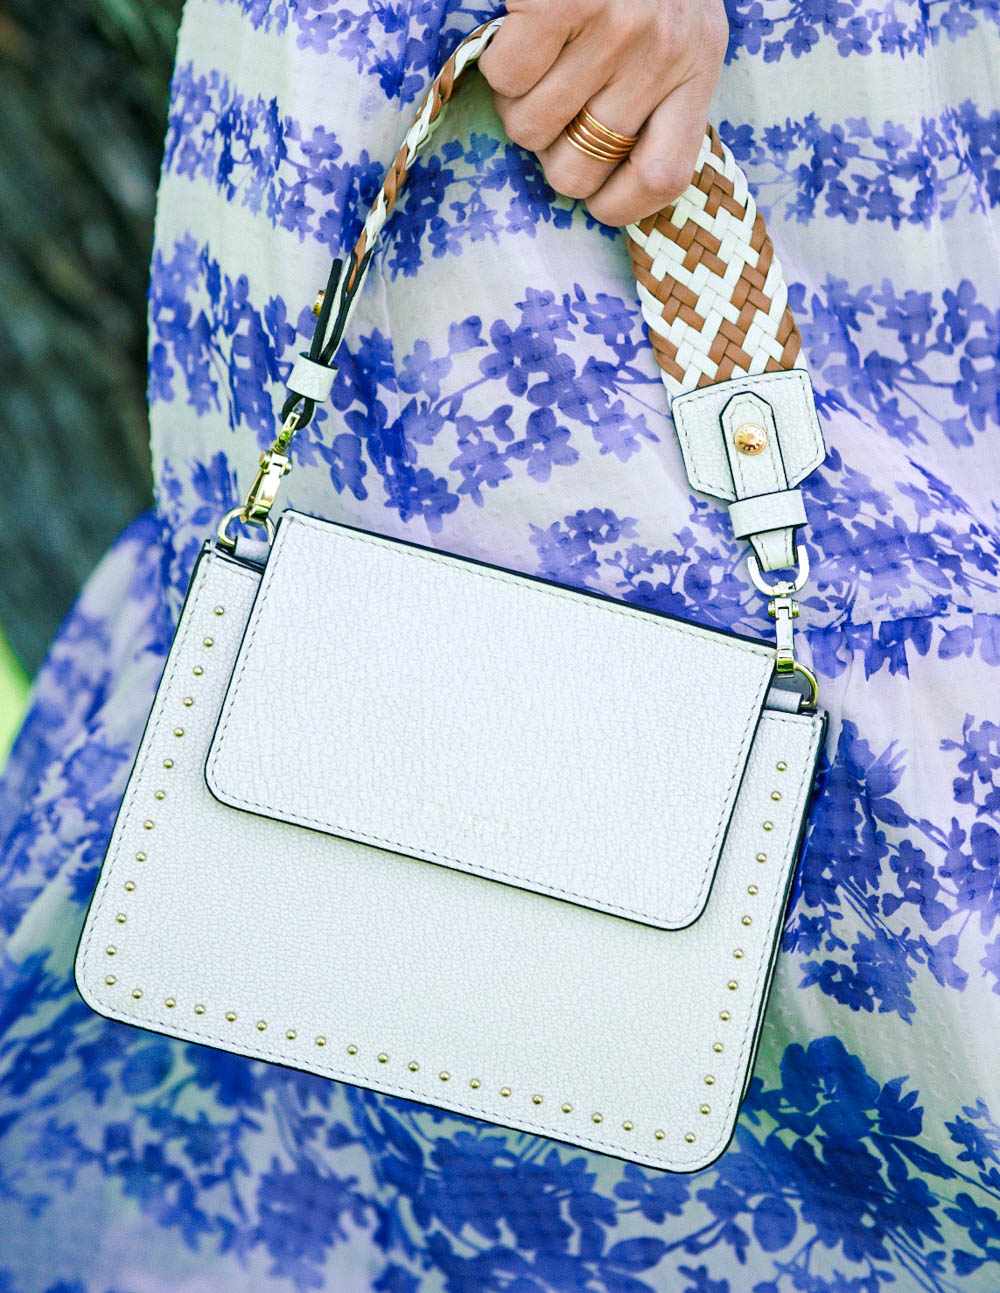 White bag from Henri Bendel. This tini, woven handle, crossbody bag with small gold studs from Henri Bendel is the perfect size for your next special event or wedding. Featured by Erin Busbee, fashion blogger and youtuber for busy women over 40 from Busbee Style